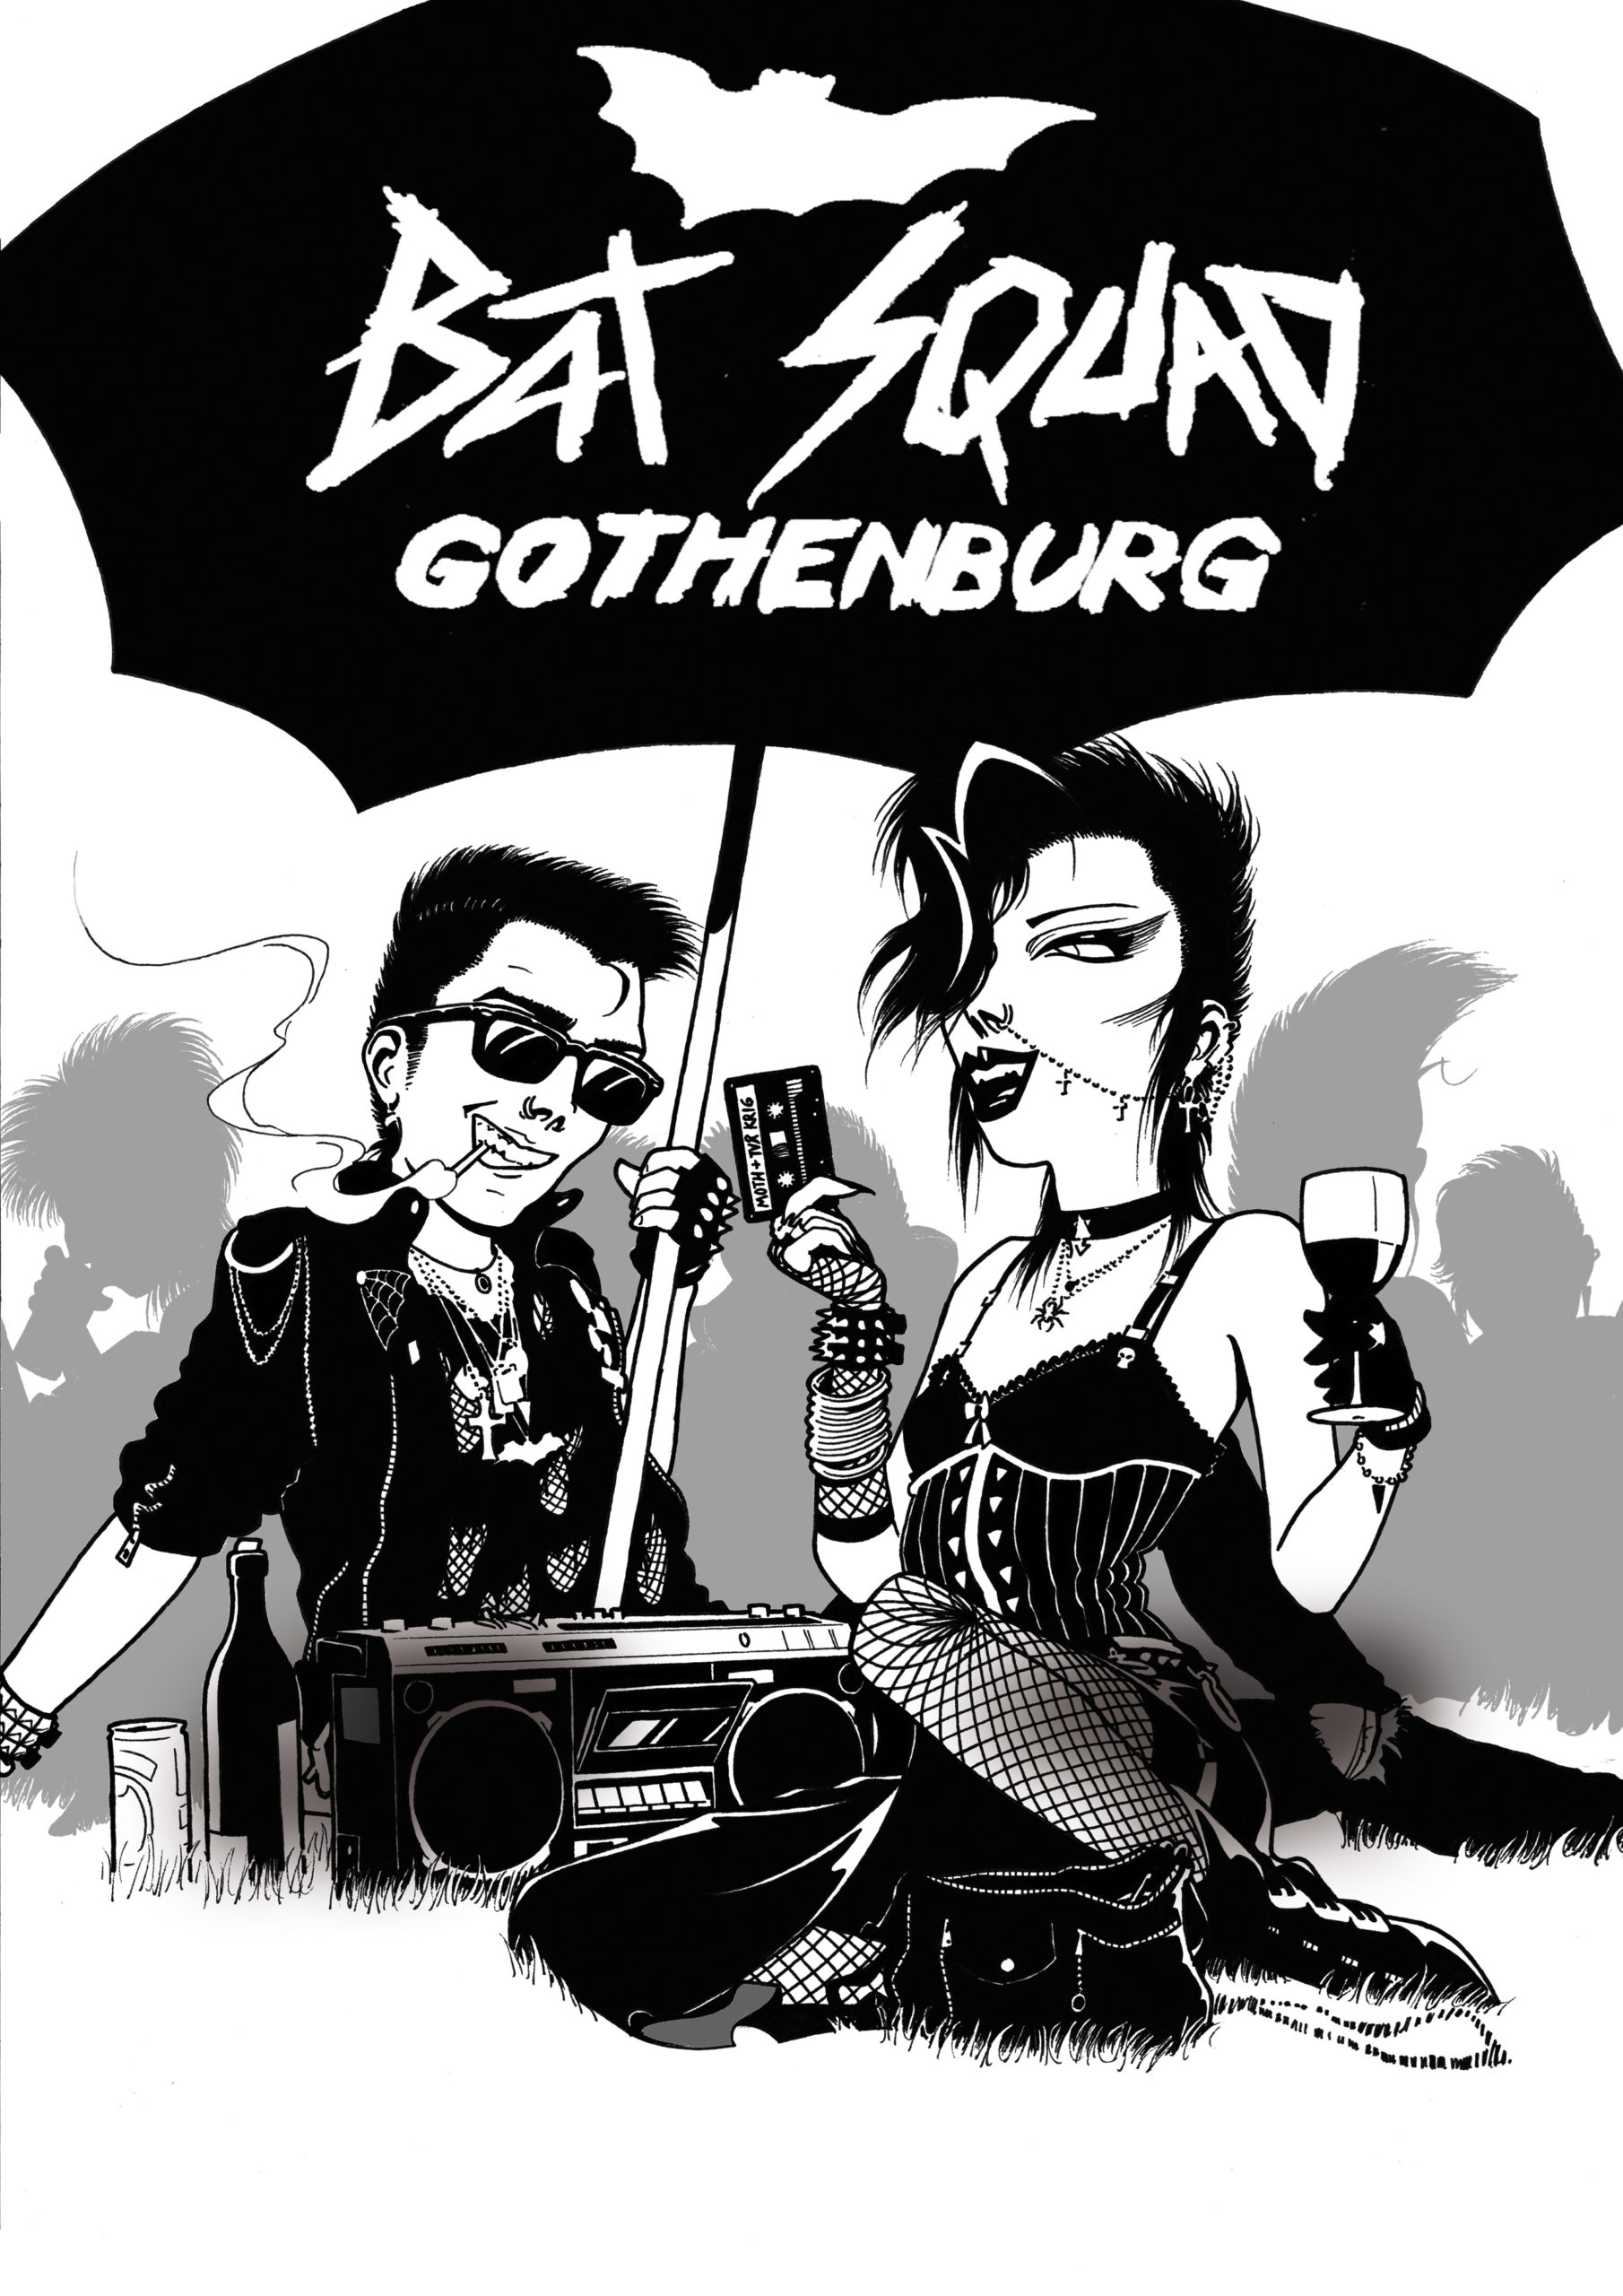 Bat Squad Gothenburg, poster 8.